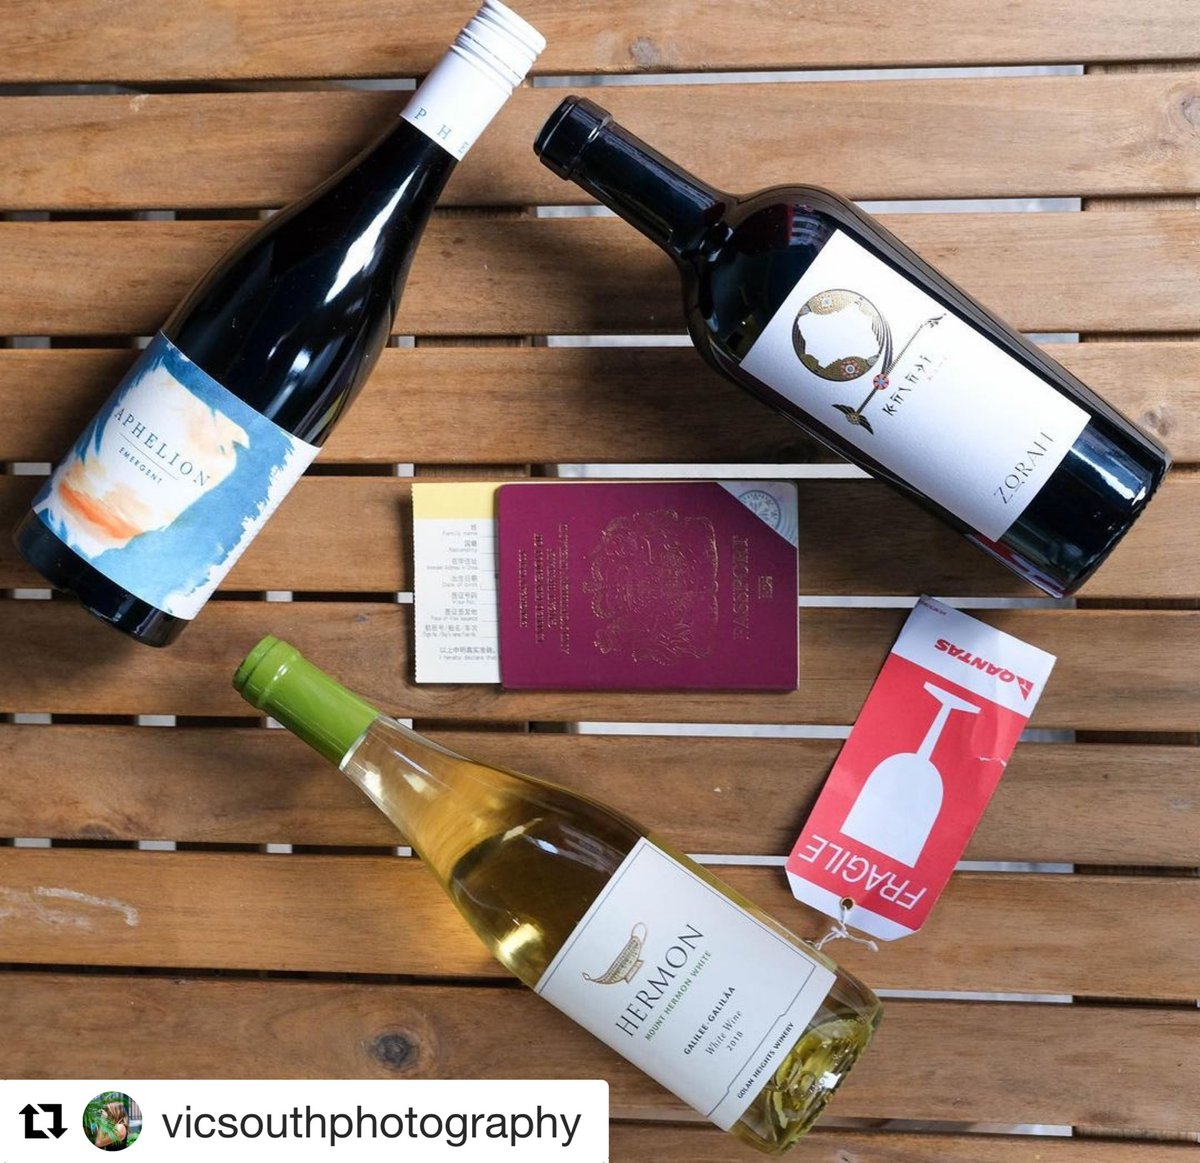 YOUR. POST. COVID. BUCKET. LIST.   Once we all can travel again, where would you go? 🤔❓👇  Does McLaren Vale feature in your plans?  #aphelionwine  #Repost @vicsouthphotography